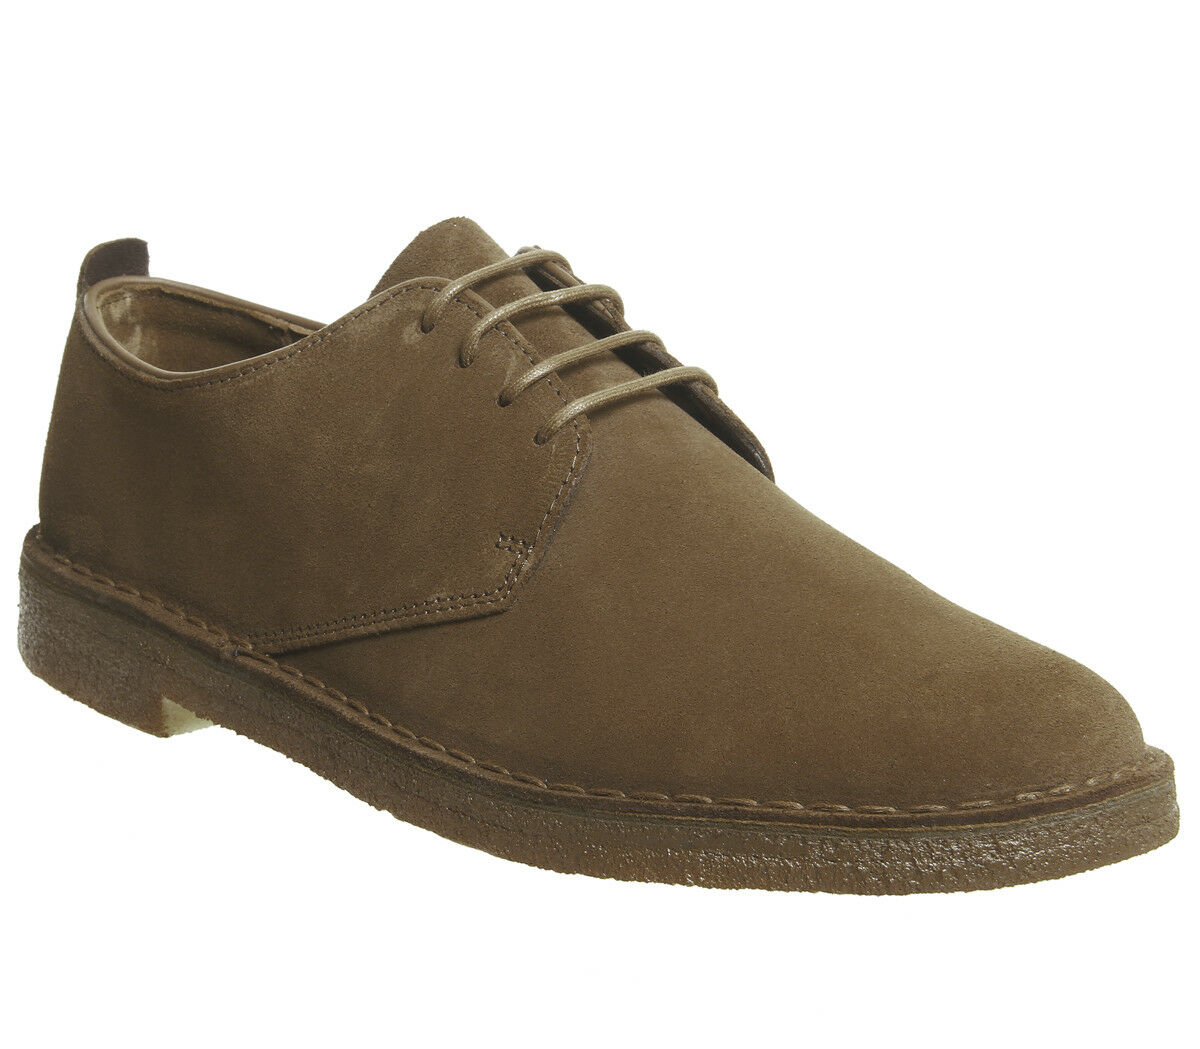 Mens Clarks Originals Desert London shoes Cola Suede New Casual shoes